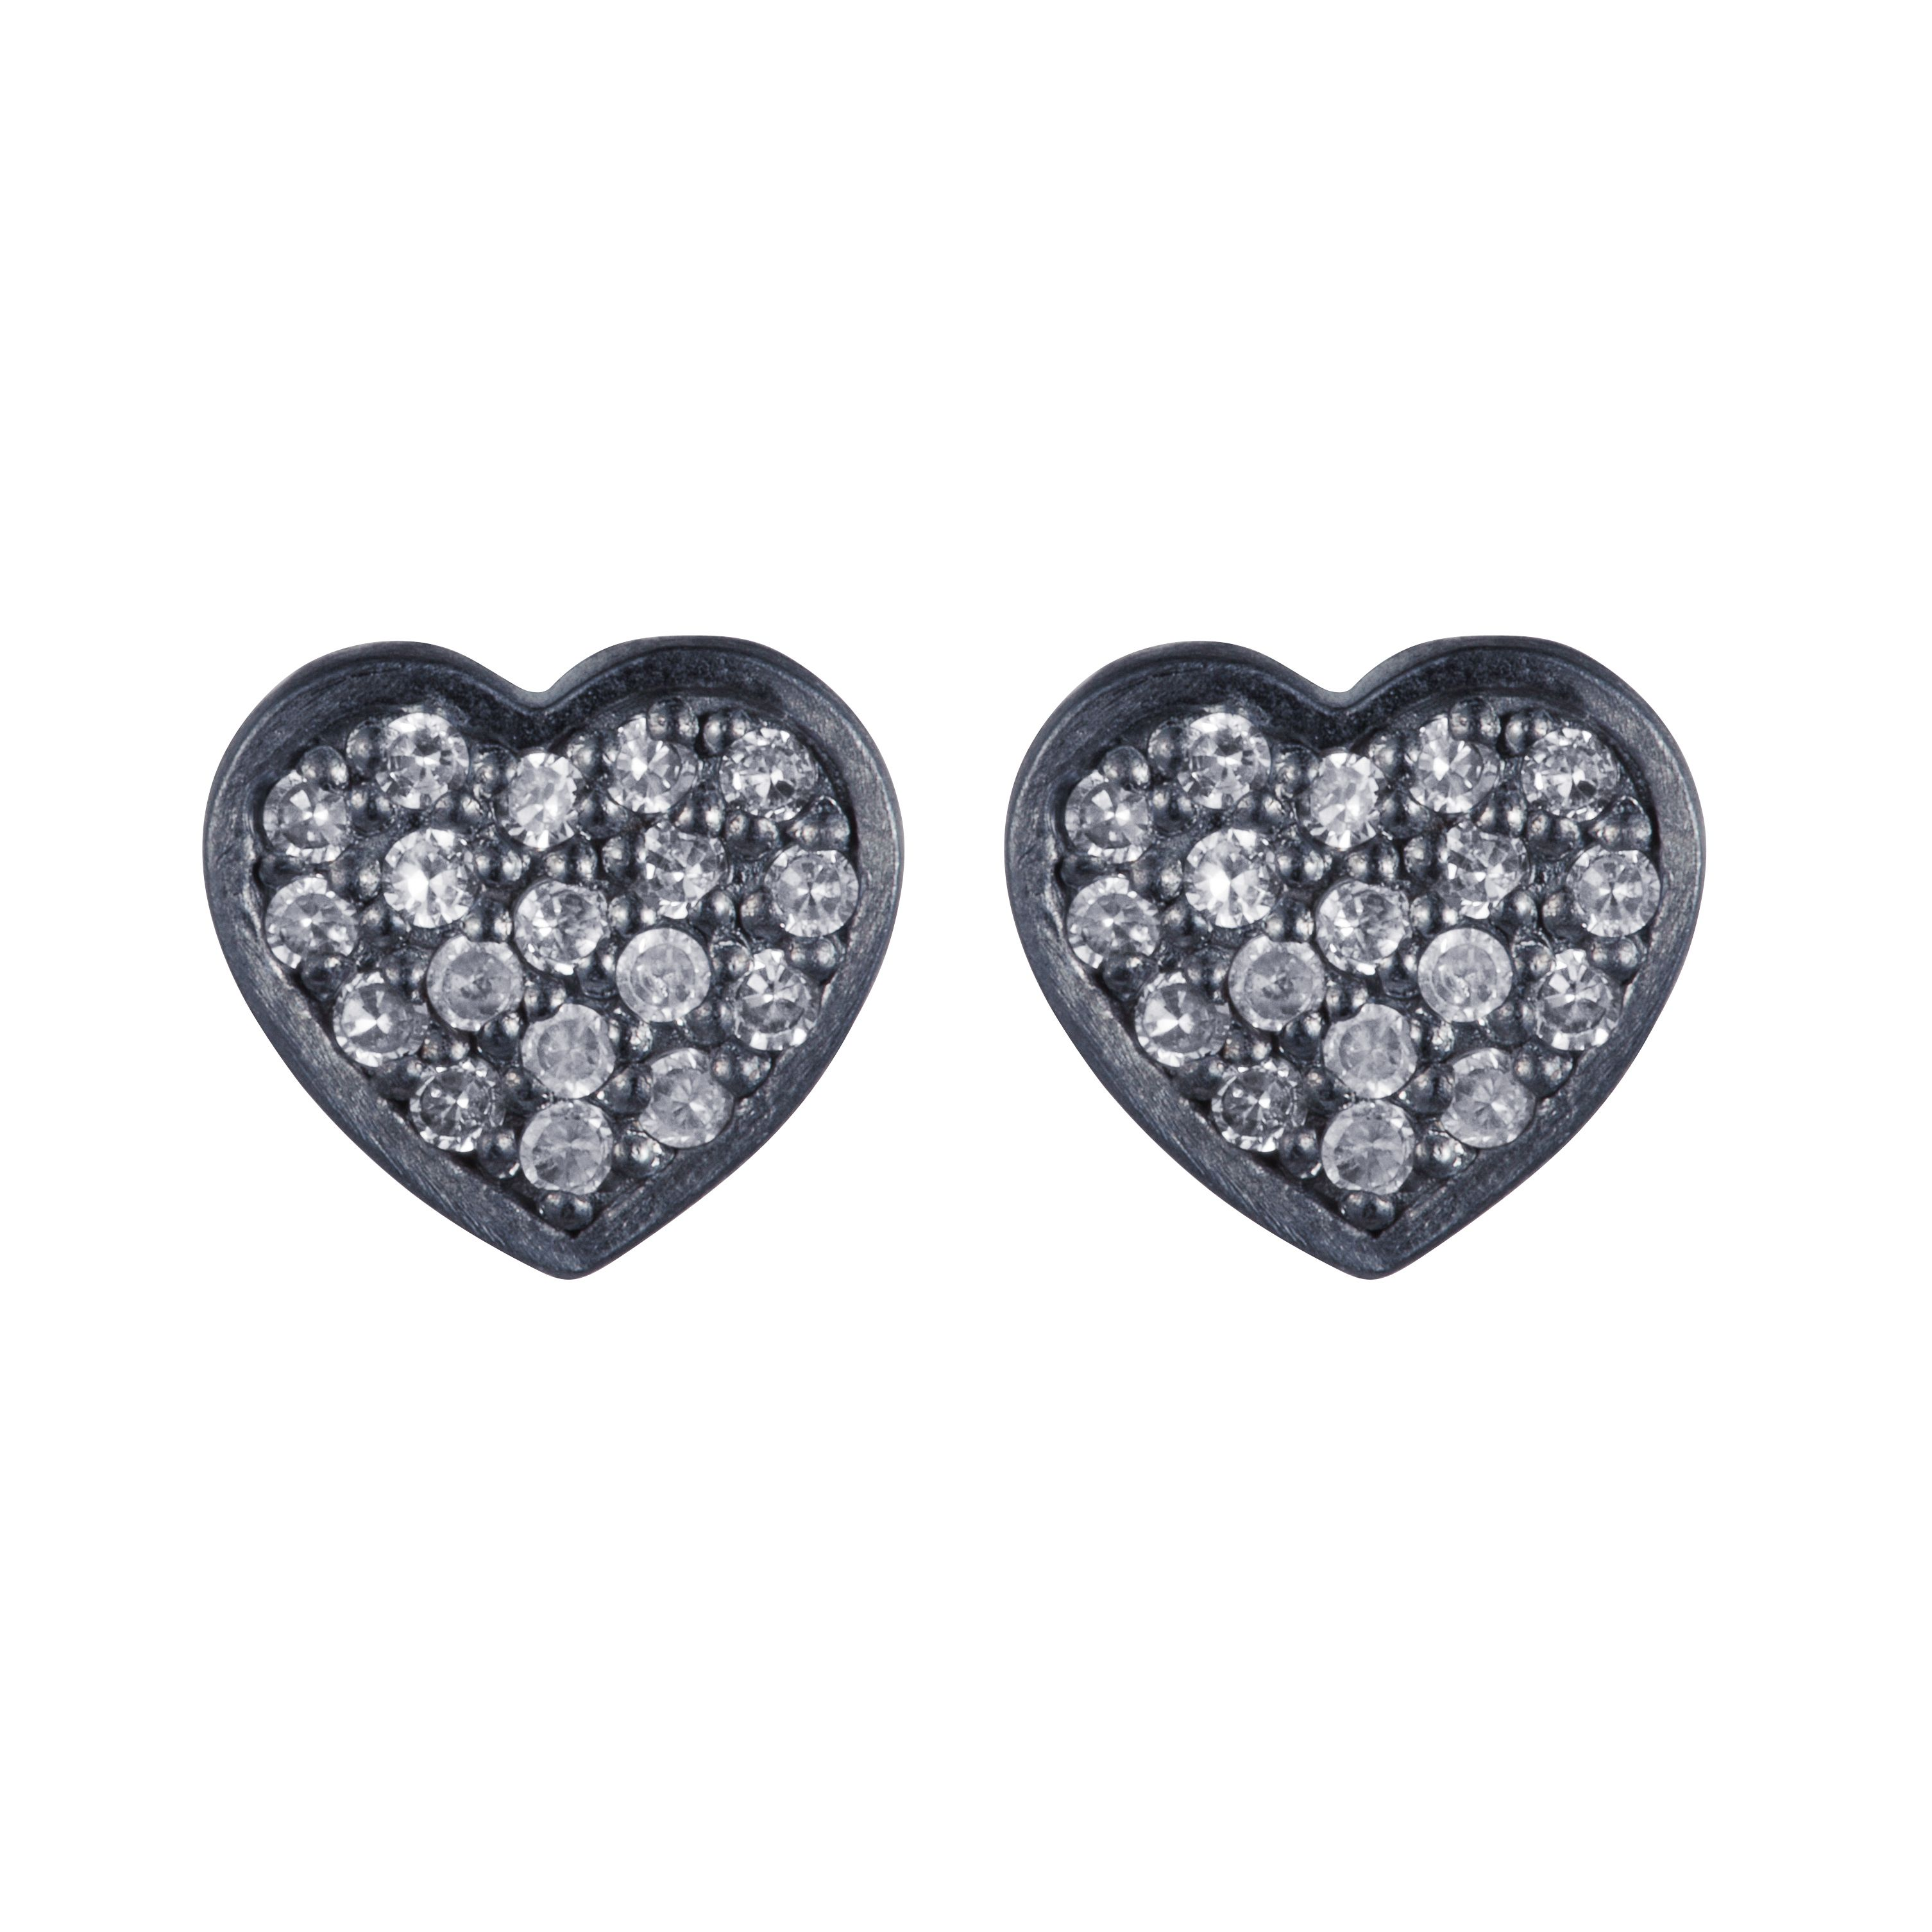 Sterling silver rhodium plated heart earrings